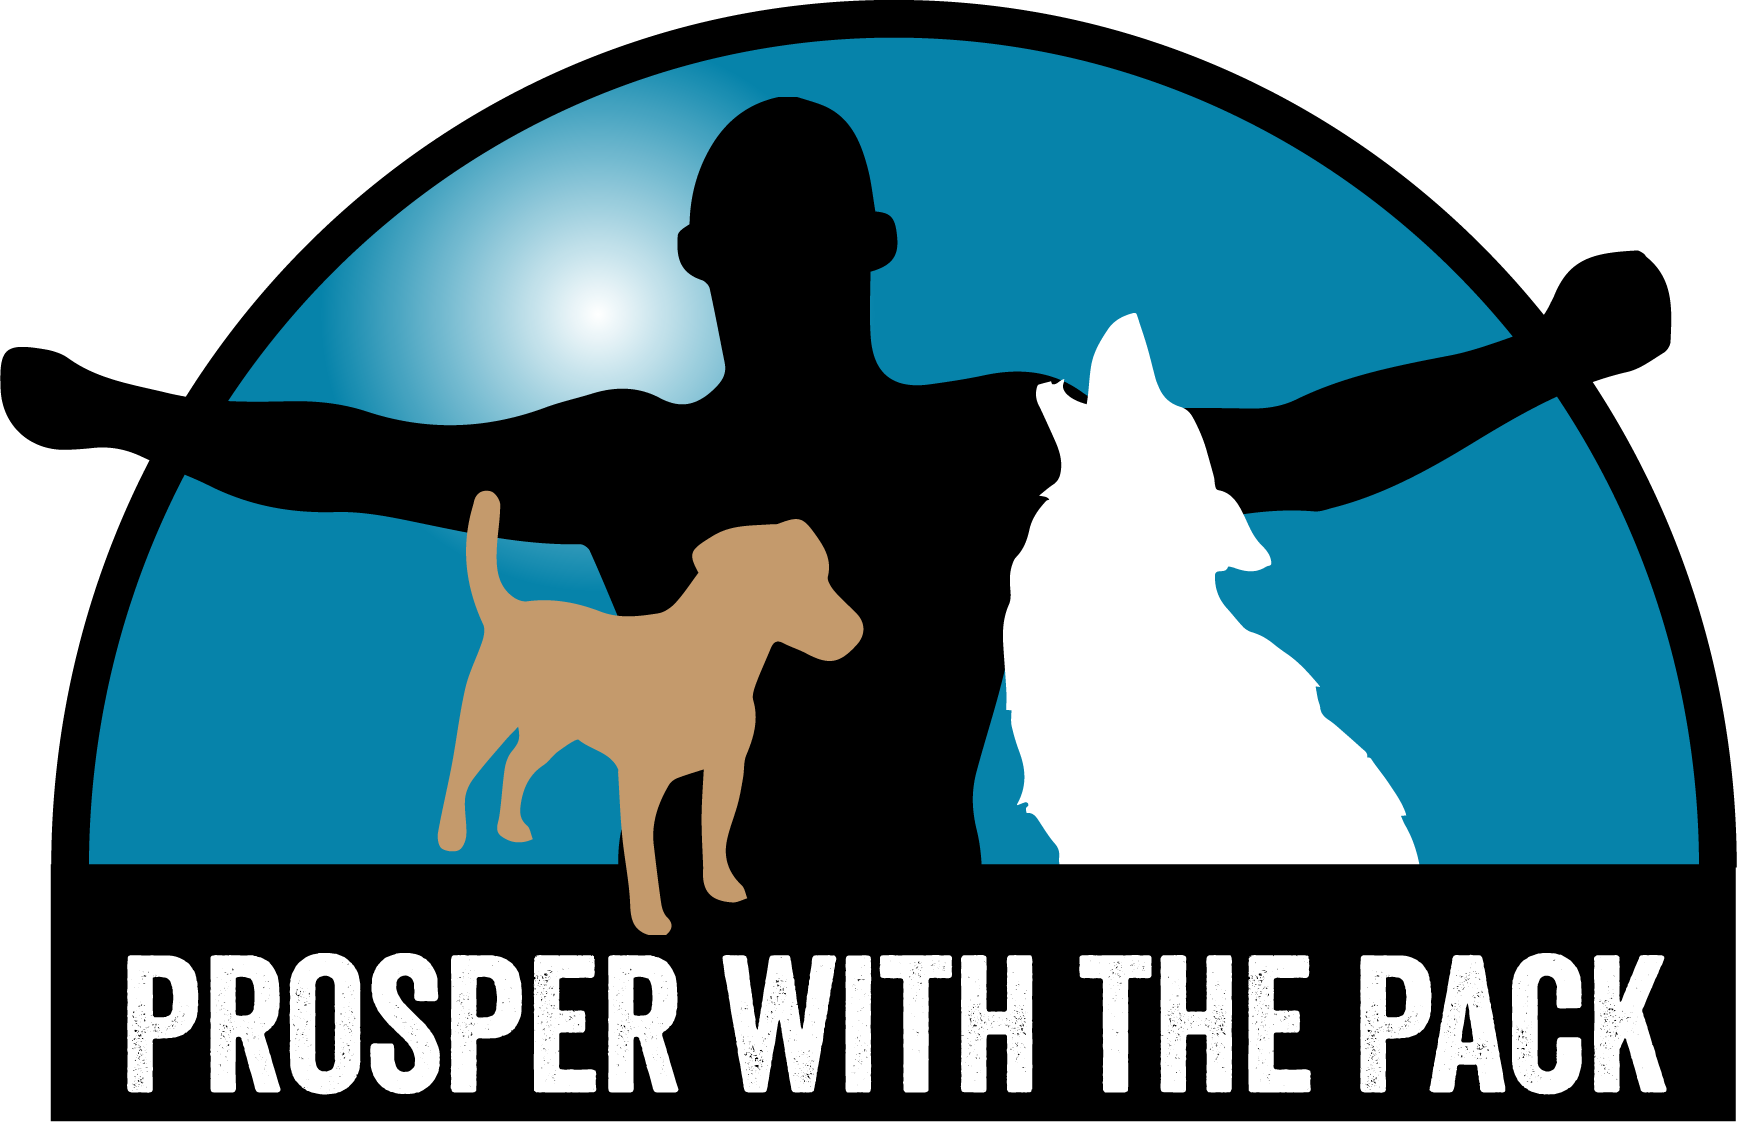 Prosper with the pack. Teamwork clipart collective bargaining